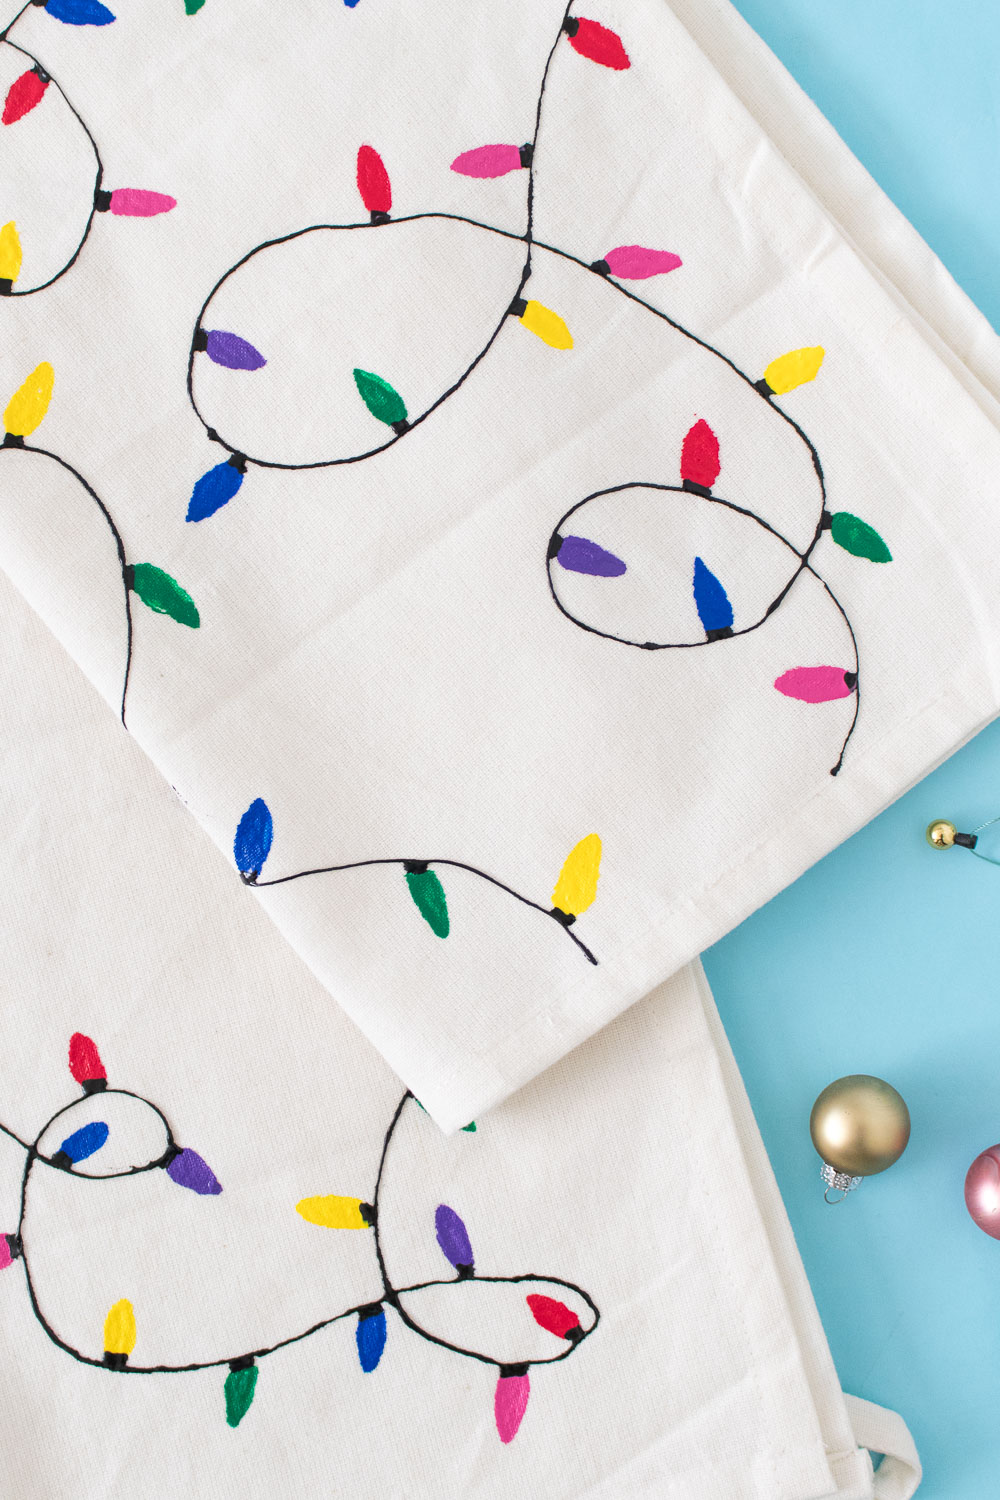 DIY Christmas Light Towels [+ a Video!]   Club Crafted